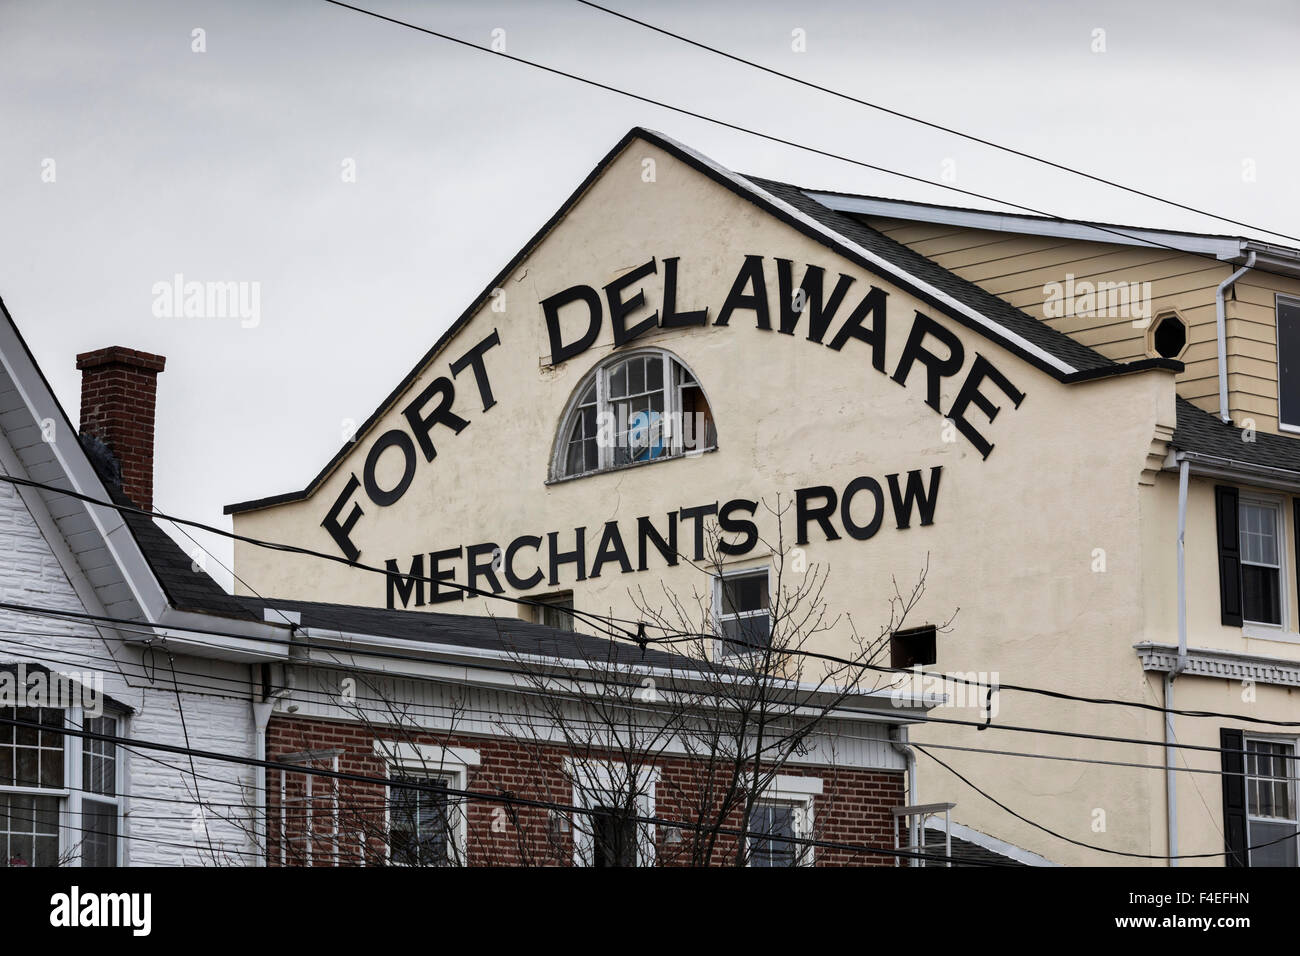 USA, Delaware, Delaware City, sign for Merchant's Row - Stock Image